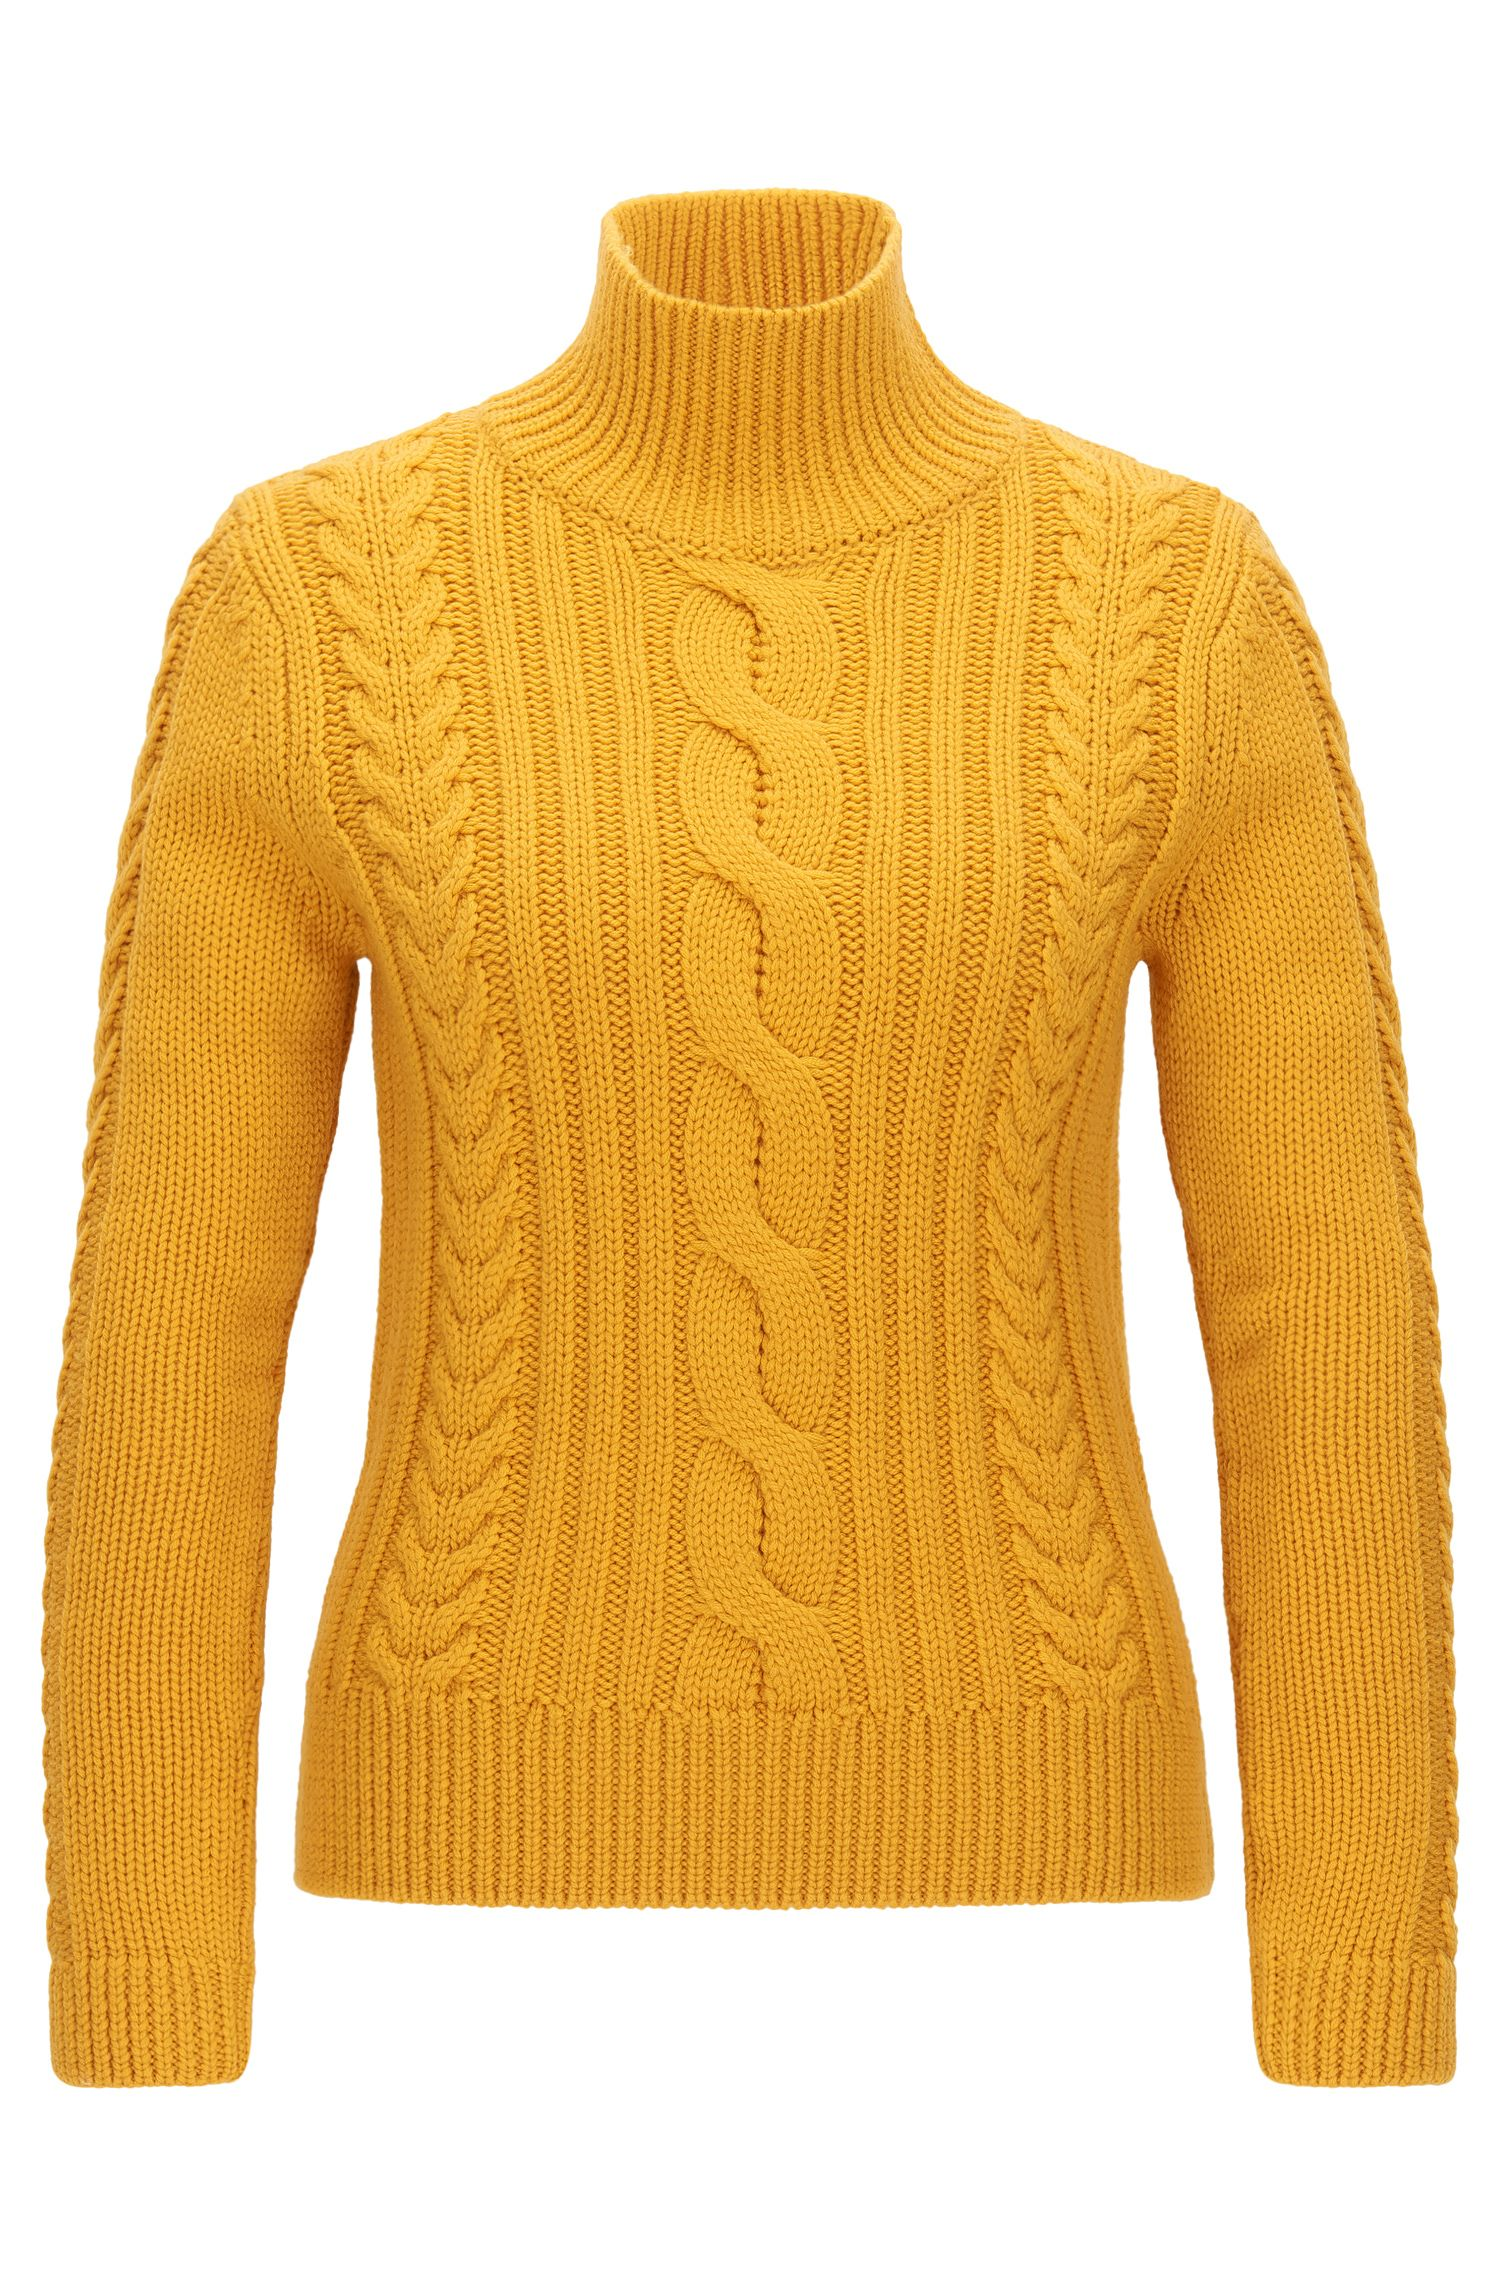 Virgin Wool Cable Knit Sweater | Samini, Gold